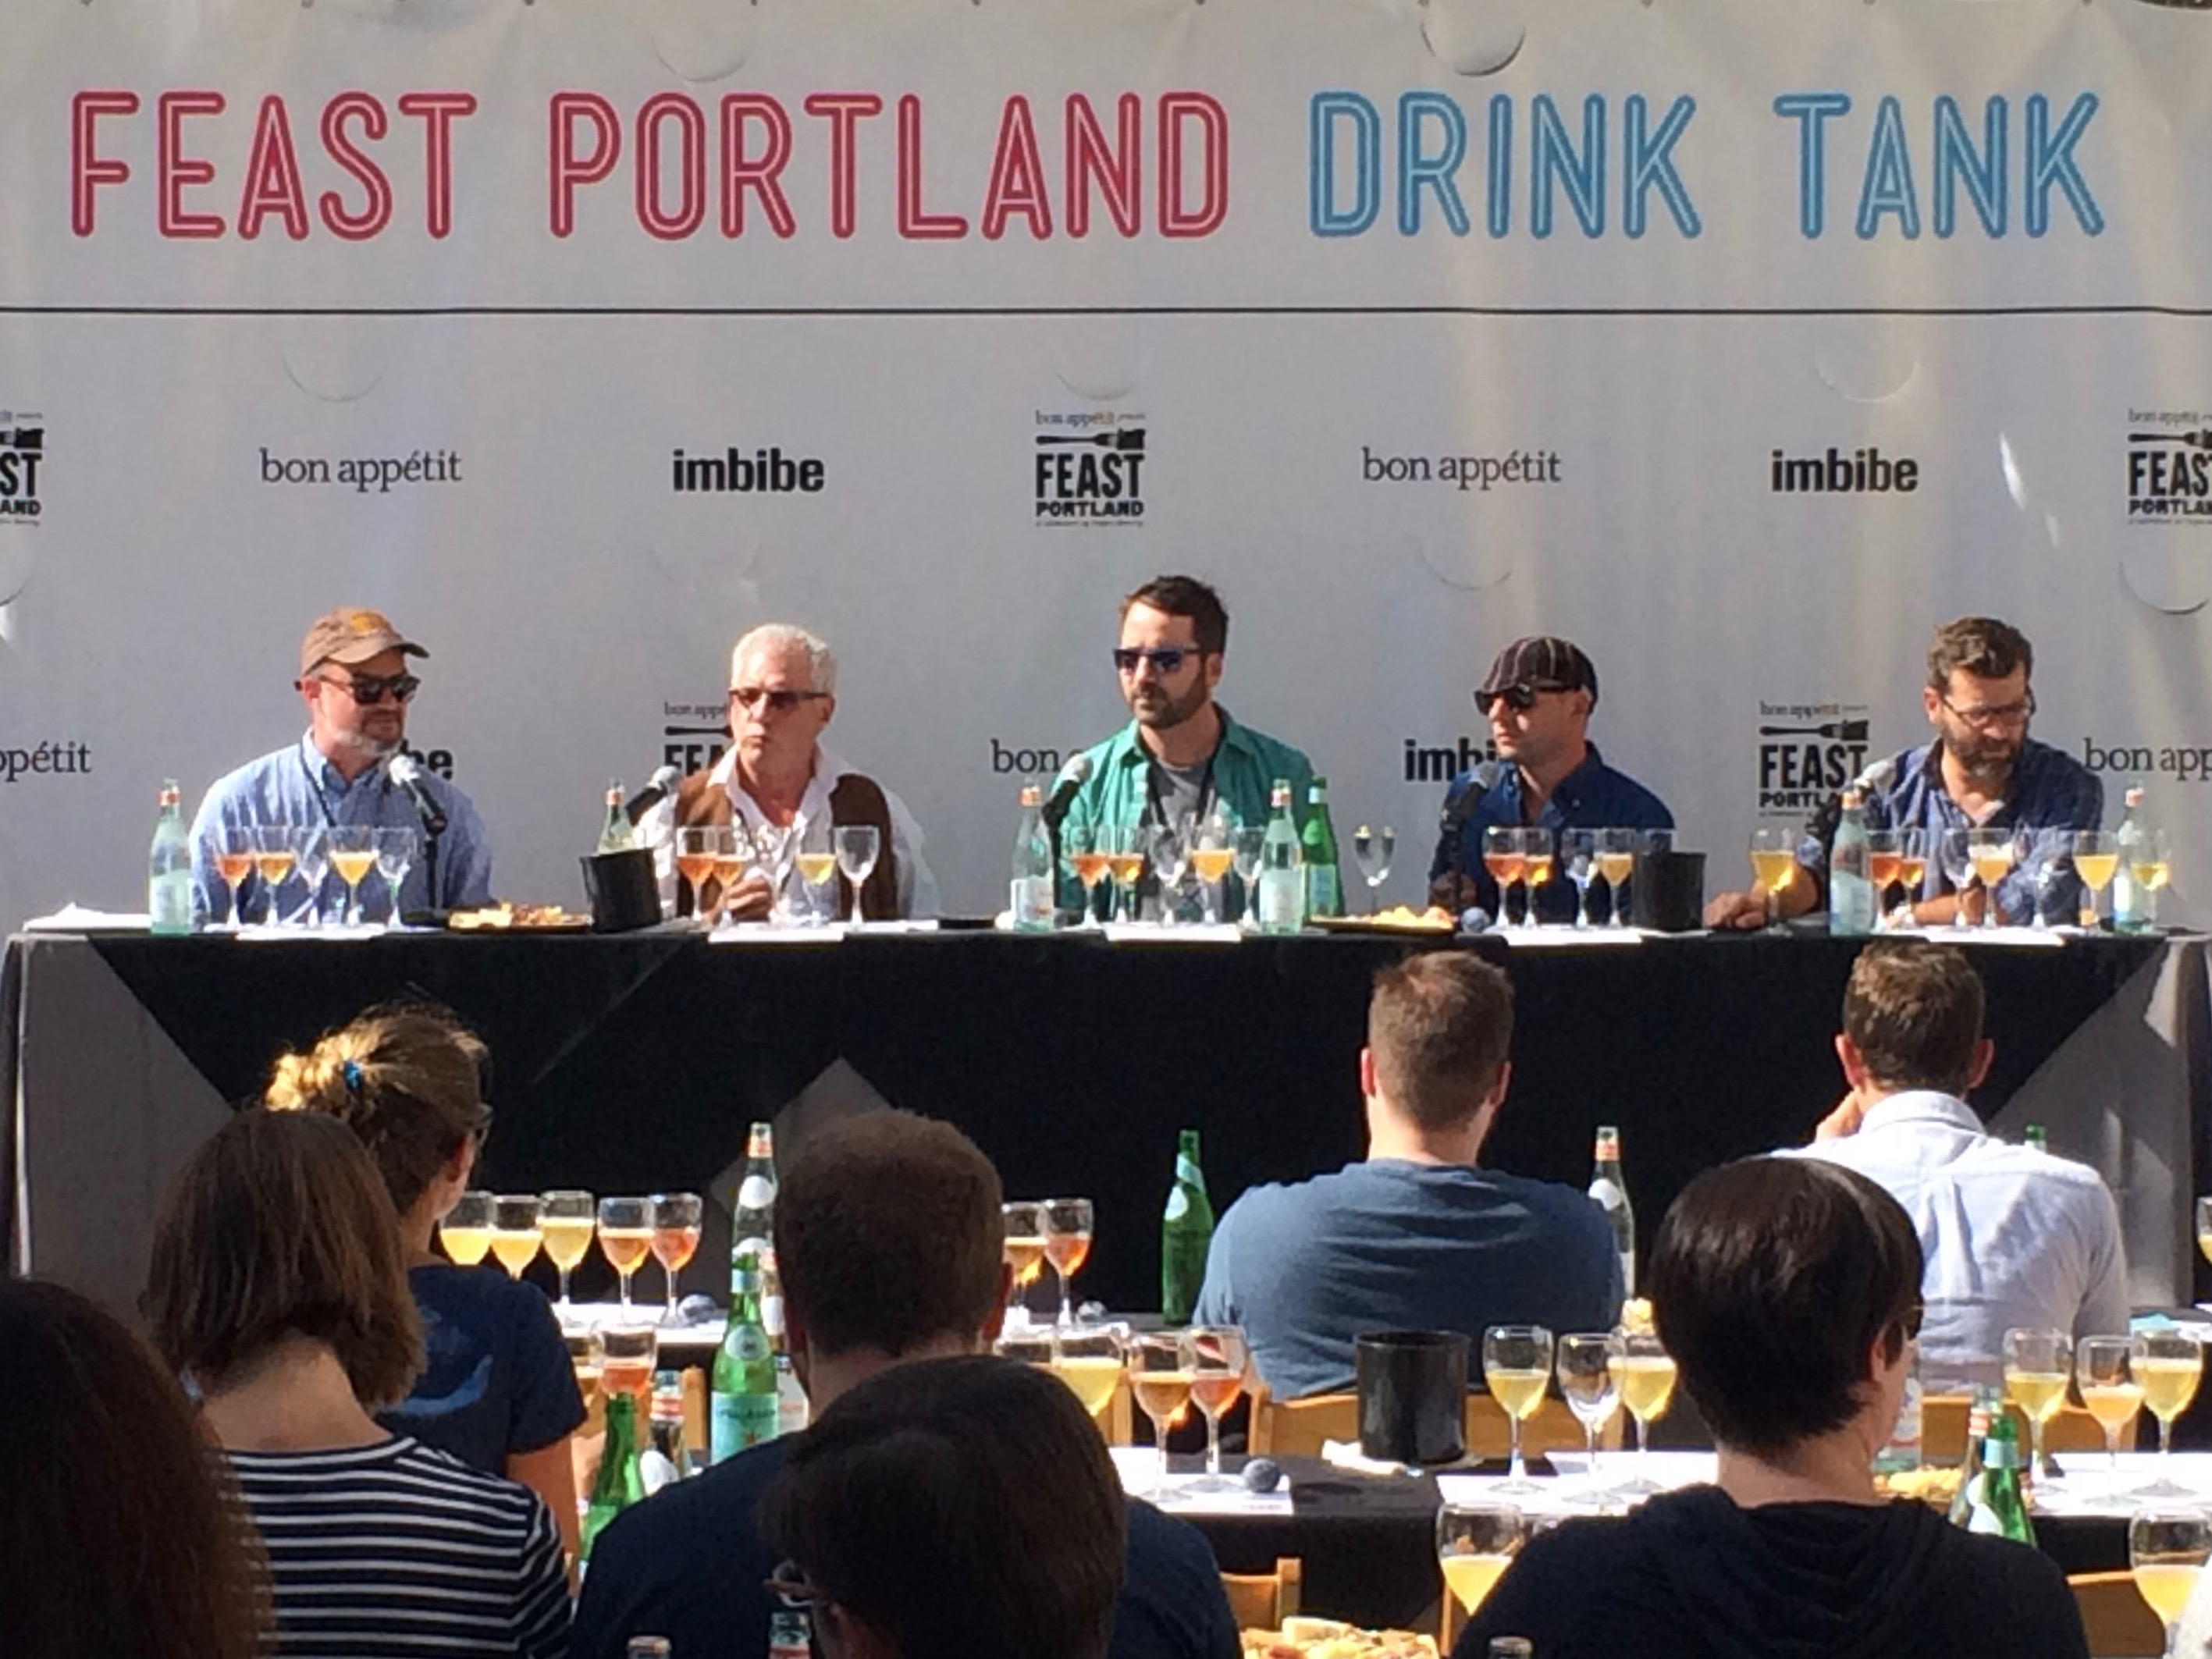 Old MacDonald Had a Brewery panel at Feast Portland. Panelists included Paul Clarke, Dave Logsdon, Christian DeBenedetti, Josh Bernstein, and David Lynch (left to right). (photo by D.J. Paul)